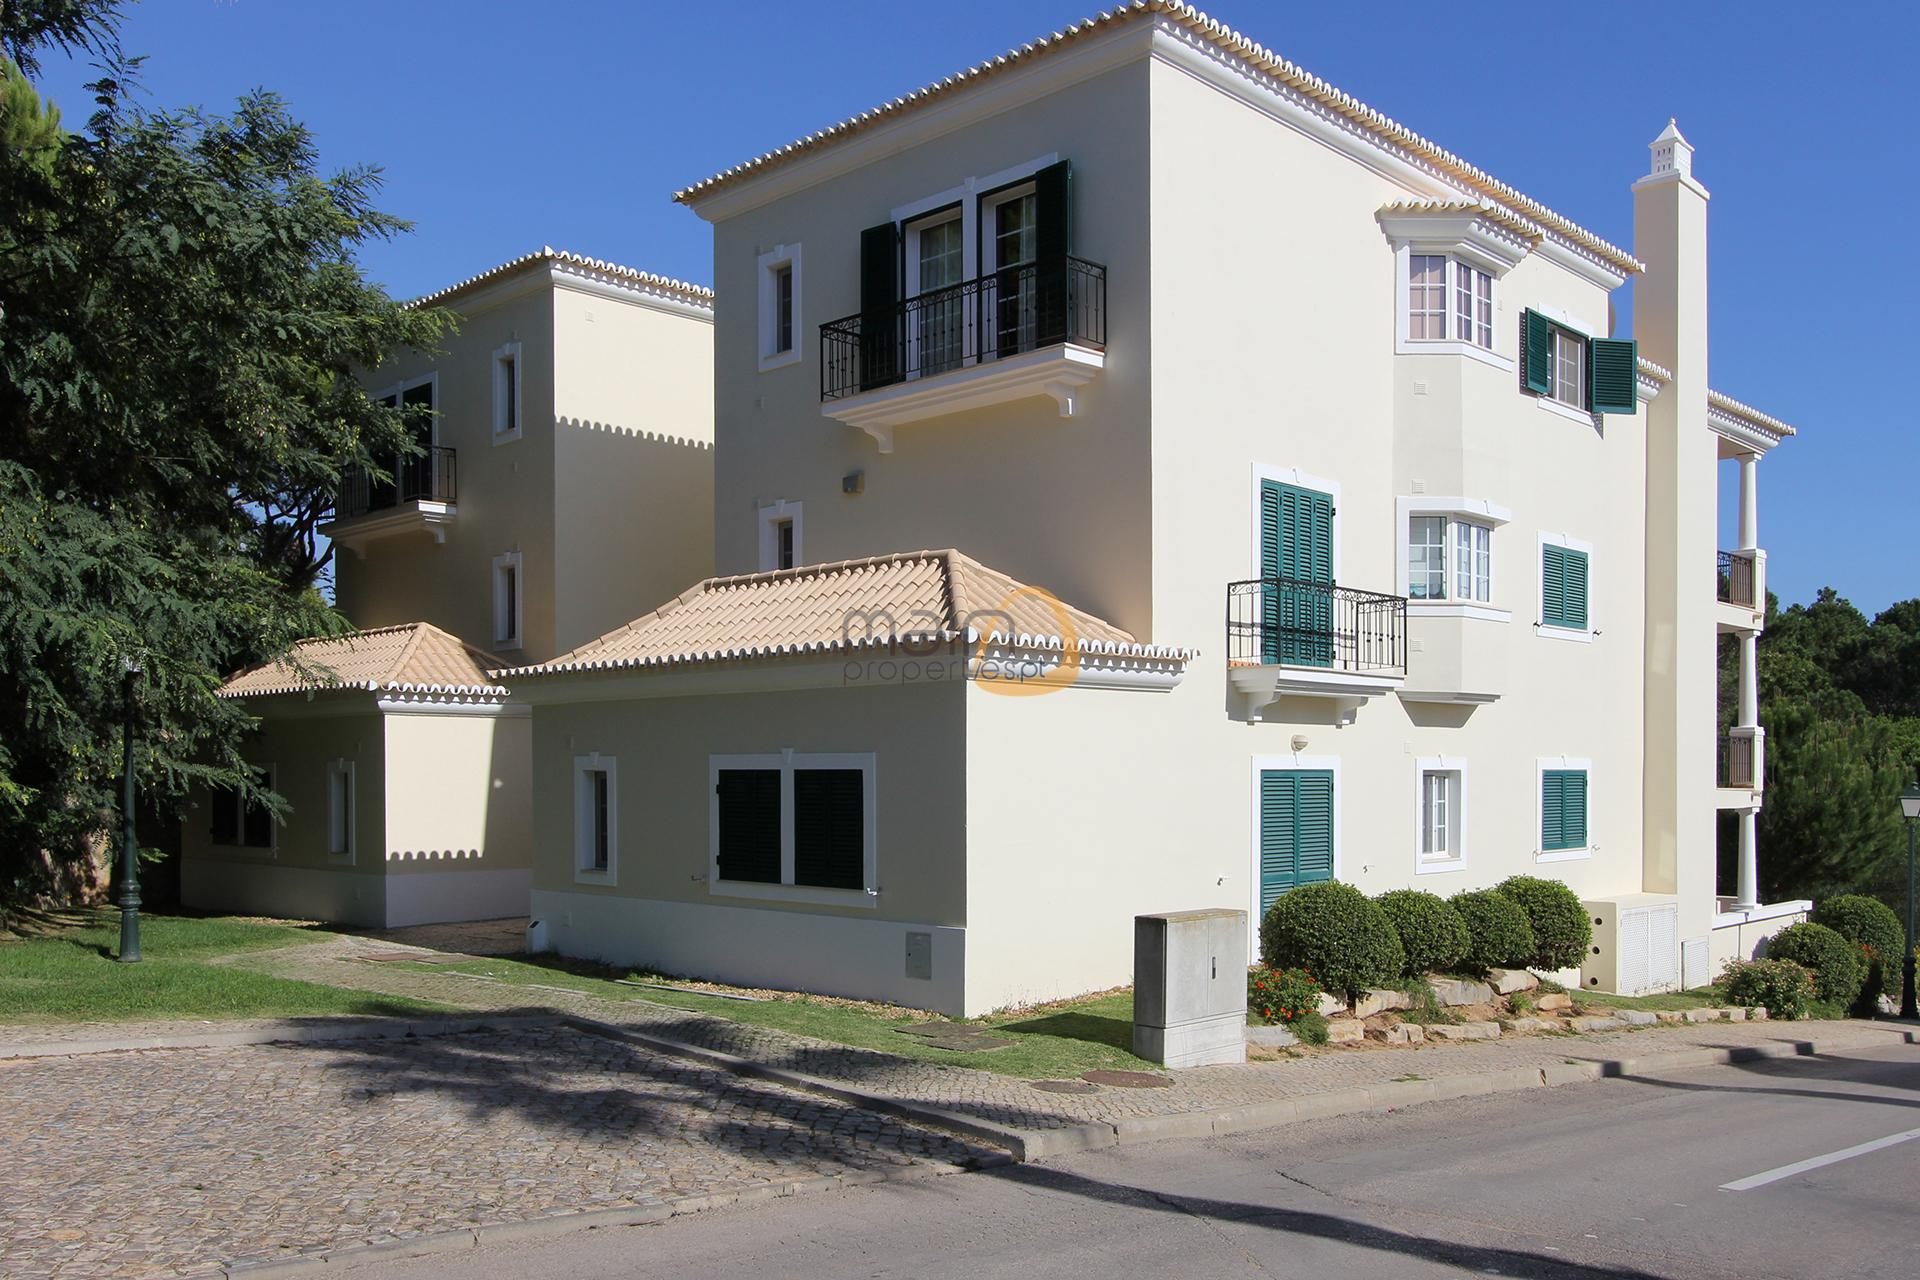 apartment-in-vale-do-lobo-algarve-golden-triangle-portugal-property-real-estate-mainproperties-mp133vdl-4